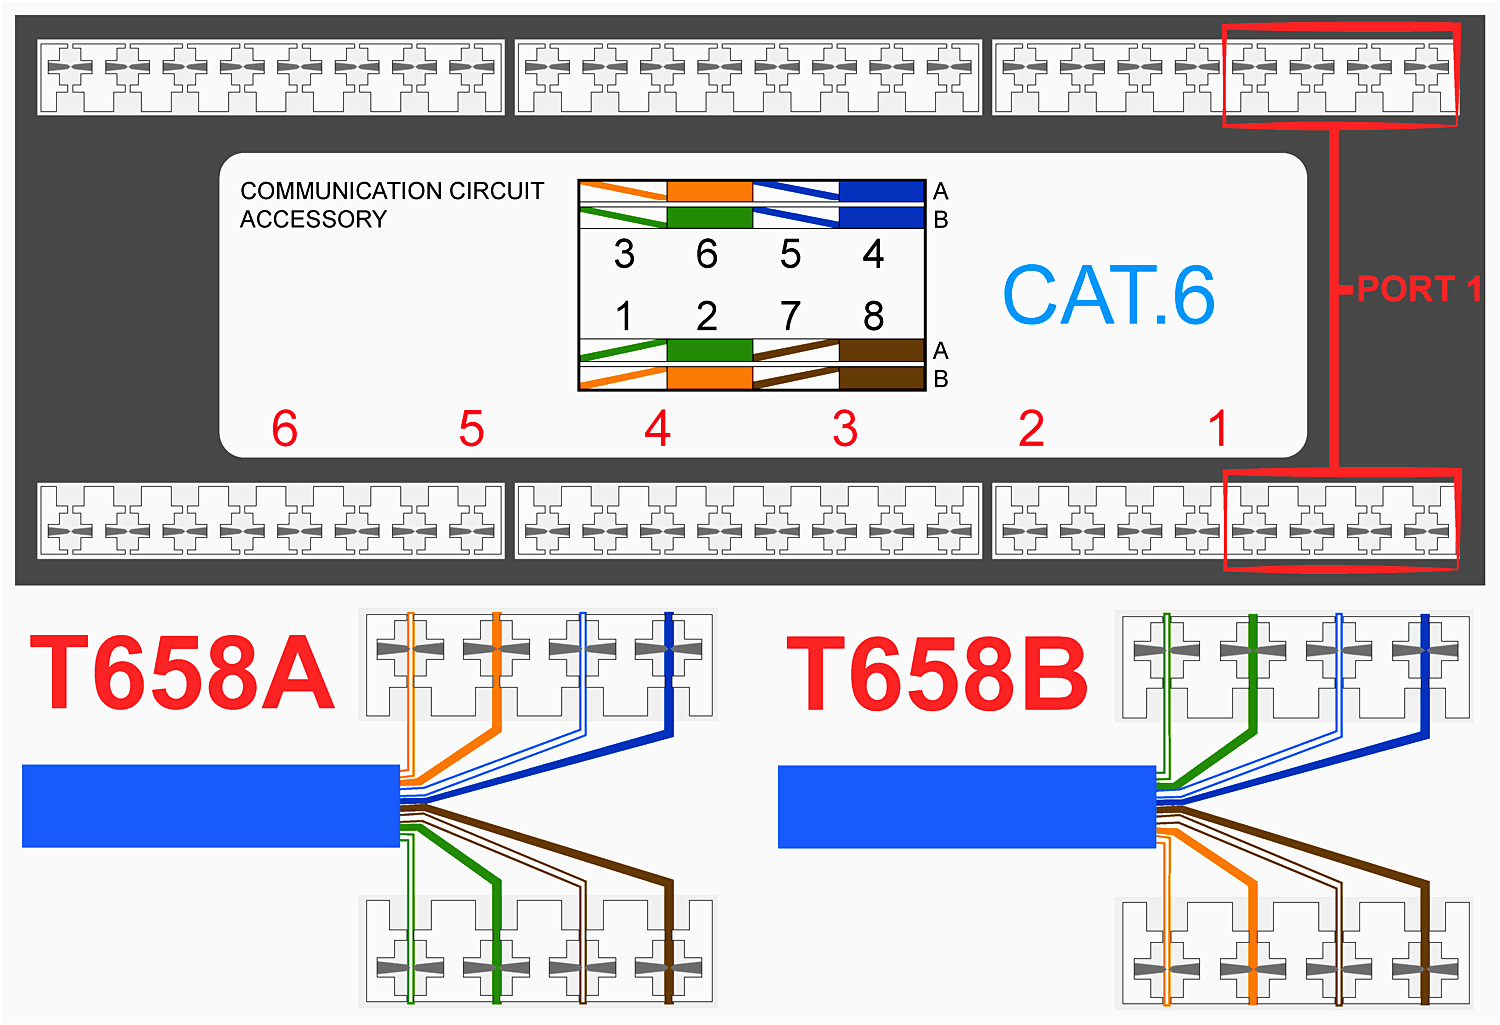 cat6 keystone jack wiring diagram Download-Cat5e Keystone Jack Wiring Diagram Awesome Amazing Terminate Cat6 Rj45 S Everything You Need to Know 16-i